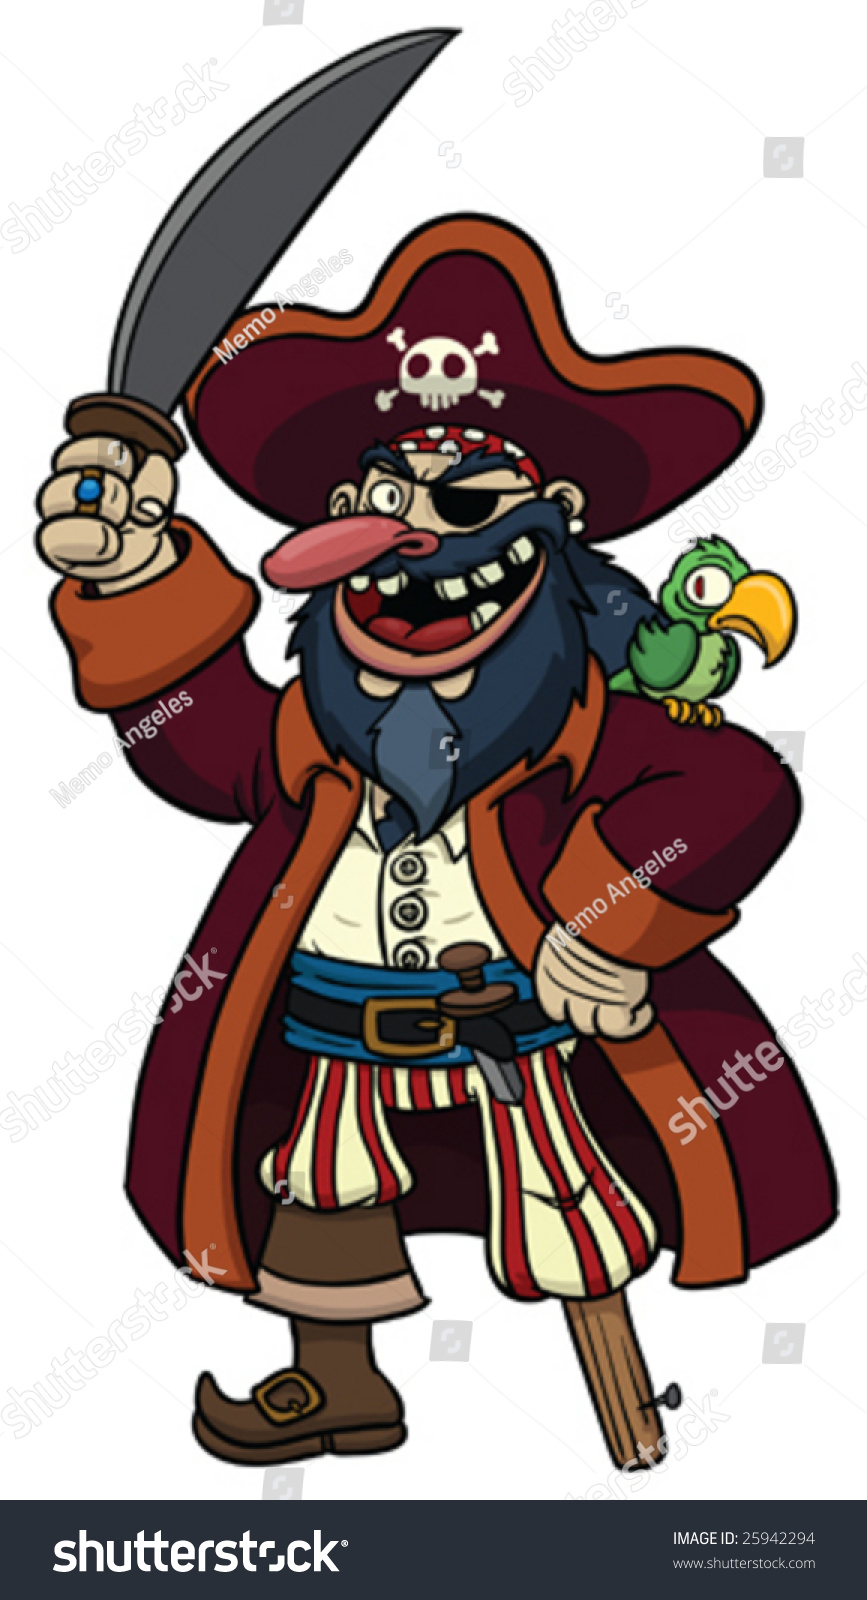 Cartoon Pirate With Parrot On His Shoulder. Stock Vector ...